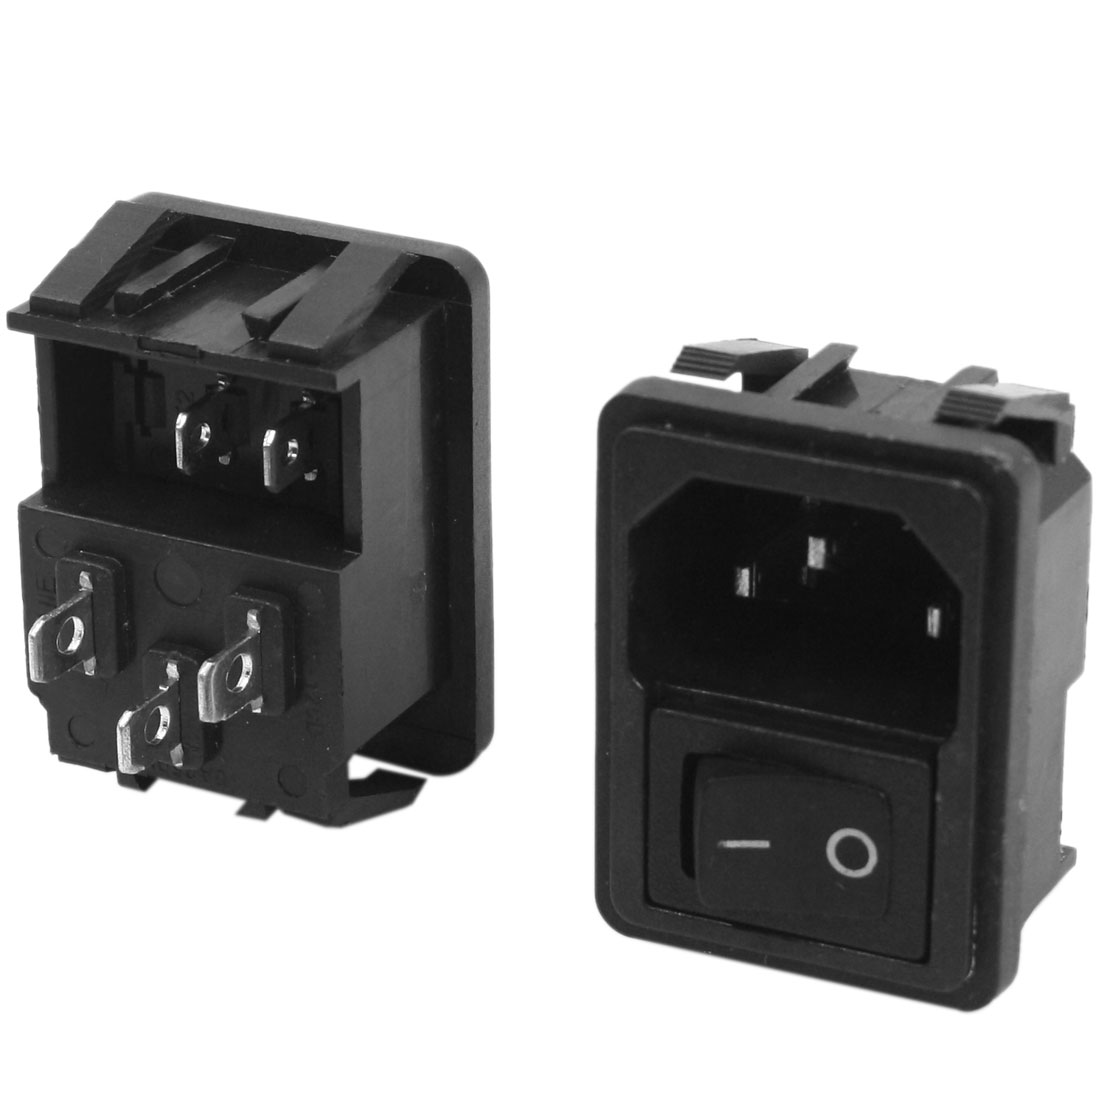 2Pcs AC 250V 10A C14 Socket Power Adapter Converter w Rocker Switch